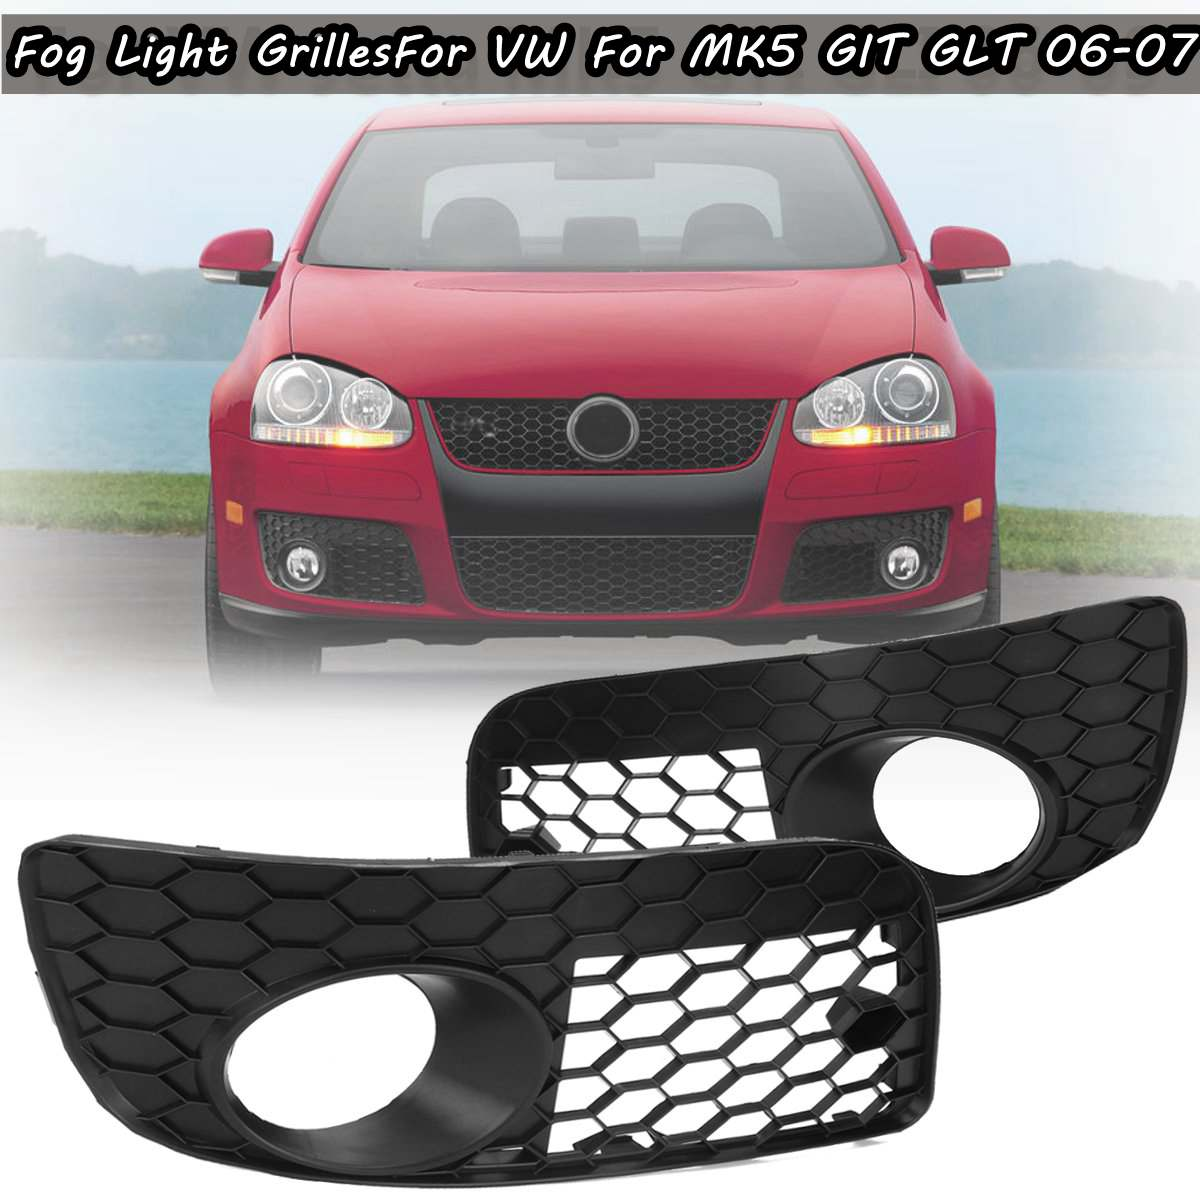 Pair Honeycomb Hex Mesh Fog Light Open Vent Grilles For Volkswagen For VW For Jetta MK5 GTI GLI 2006-2009 Car Accesorios